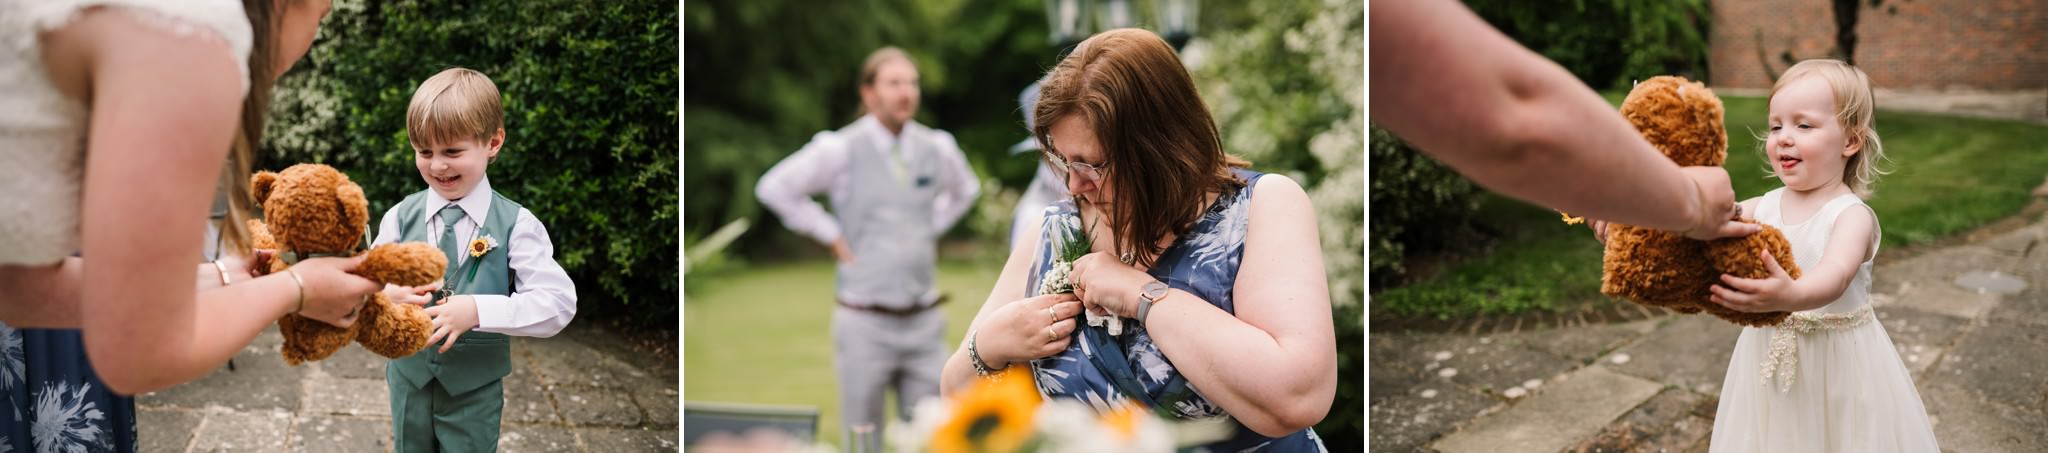 Photos by hampshire wedding photographer at Three Choirs Vineyard wedding